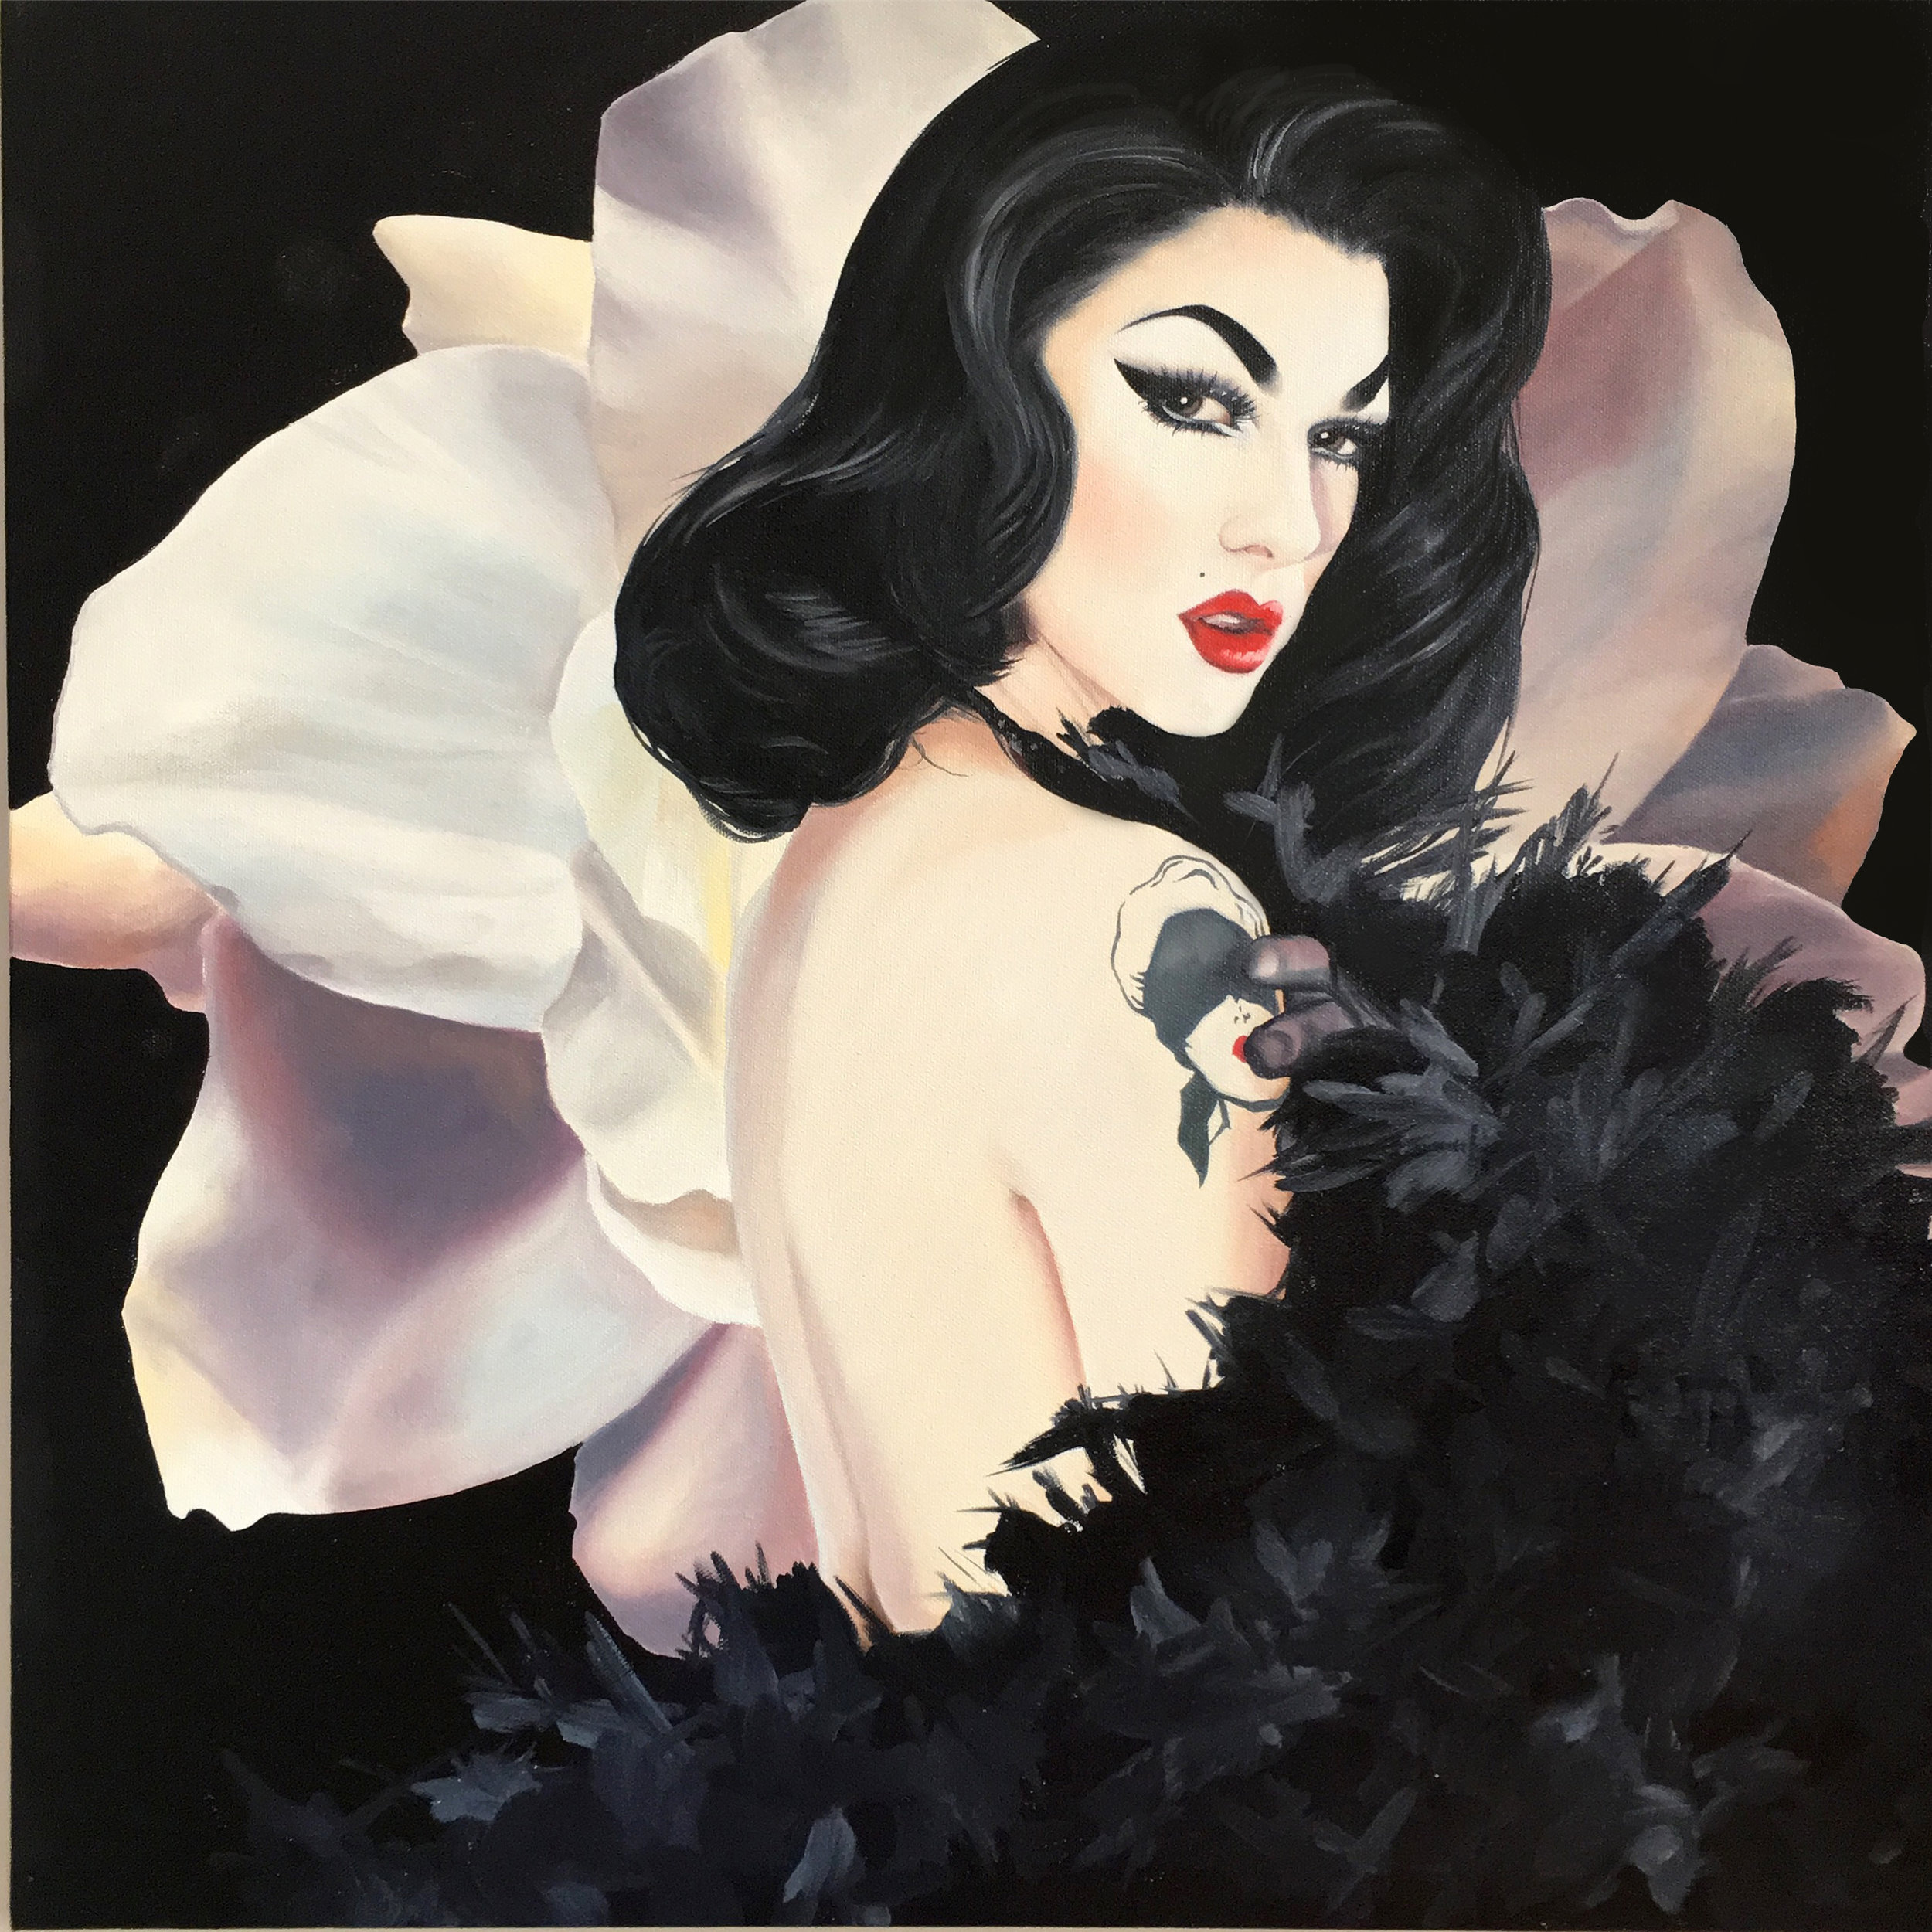 """""""Lady Noire"""", 2017, Ginger Del Rey  oil on canvas 24"""" x 24"""" x .6""""  $1250  I've recently become addicted to RuPaul's Drag Race. Mostly I'm drawn to the incredible creativity... the reinventing of oneself into a fabulous bird of paradise. I find the transformation to be pure art. One of the most successful and bewitching new drag queens is Violet Chachki. Her costumes are the most exquisite works of stitchery, her Erte look is beyond gorgeous and her pin-up looks rival Bettie Page and Dita Von Teese. This painting is a tribute to her classic beauty and killer style."""